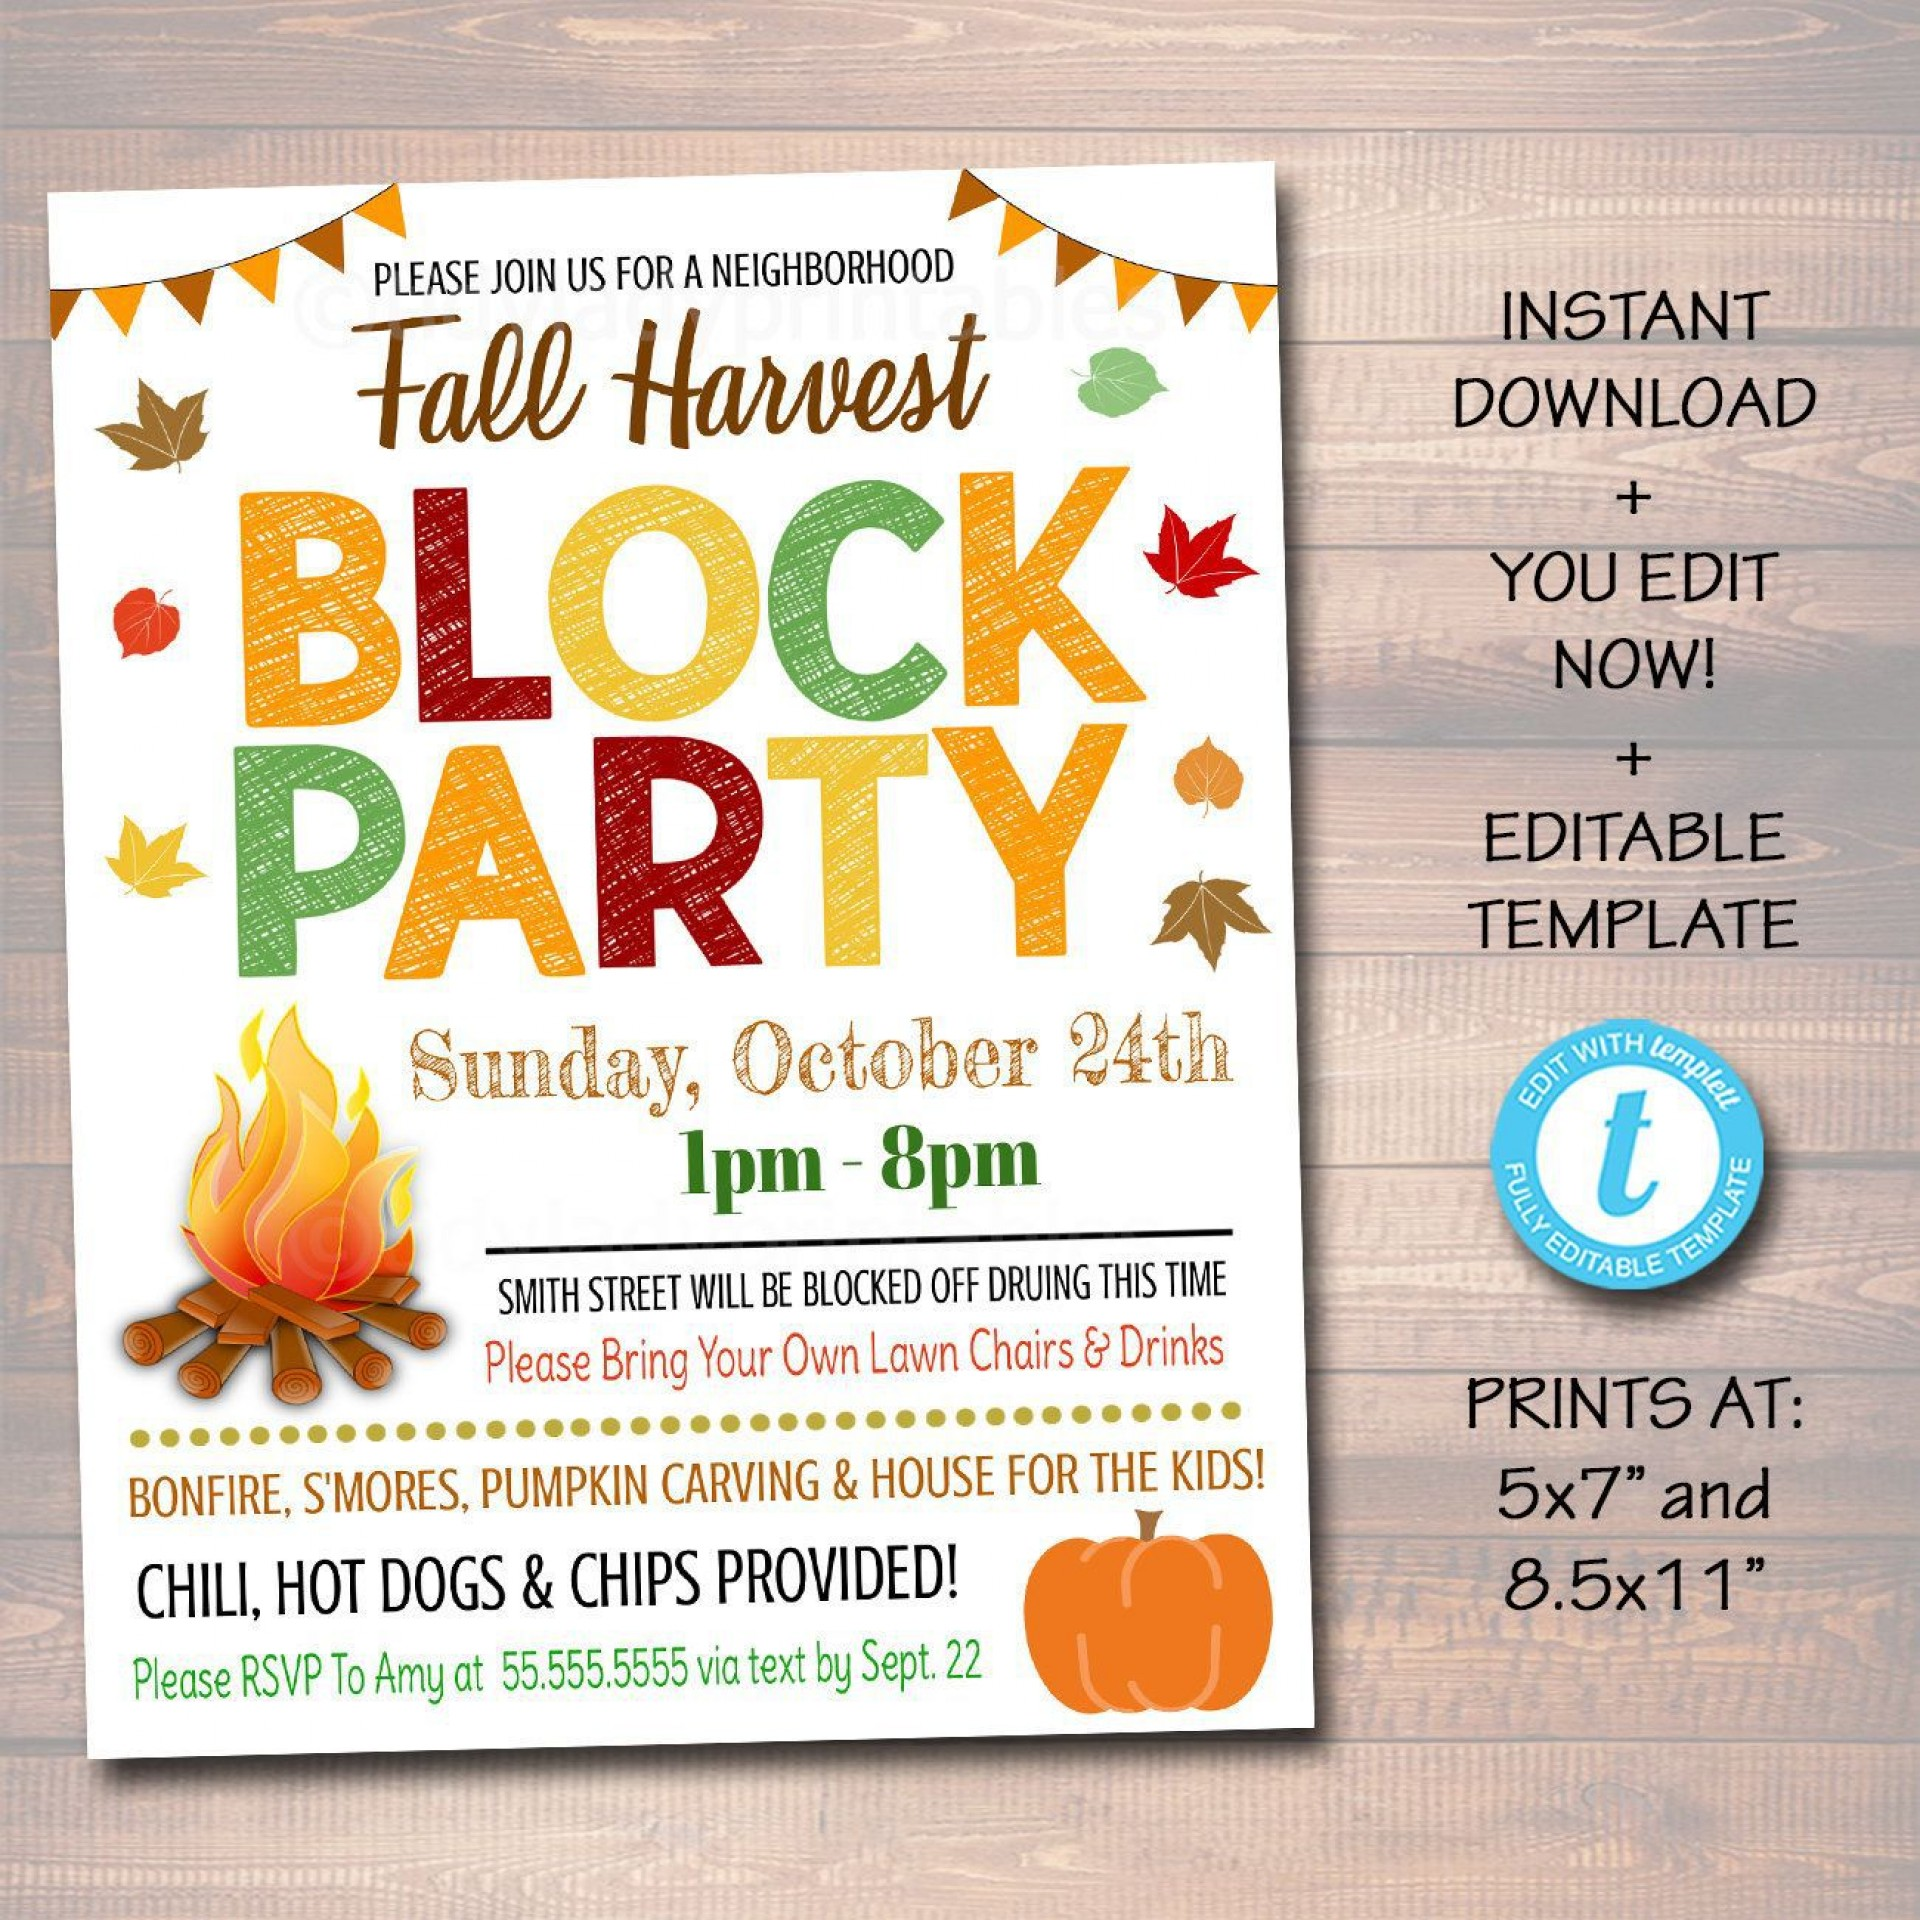 002 Rare Block Party Flyer Template Photo  Templates Free1920